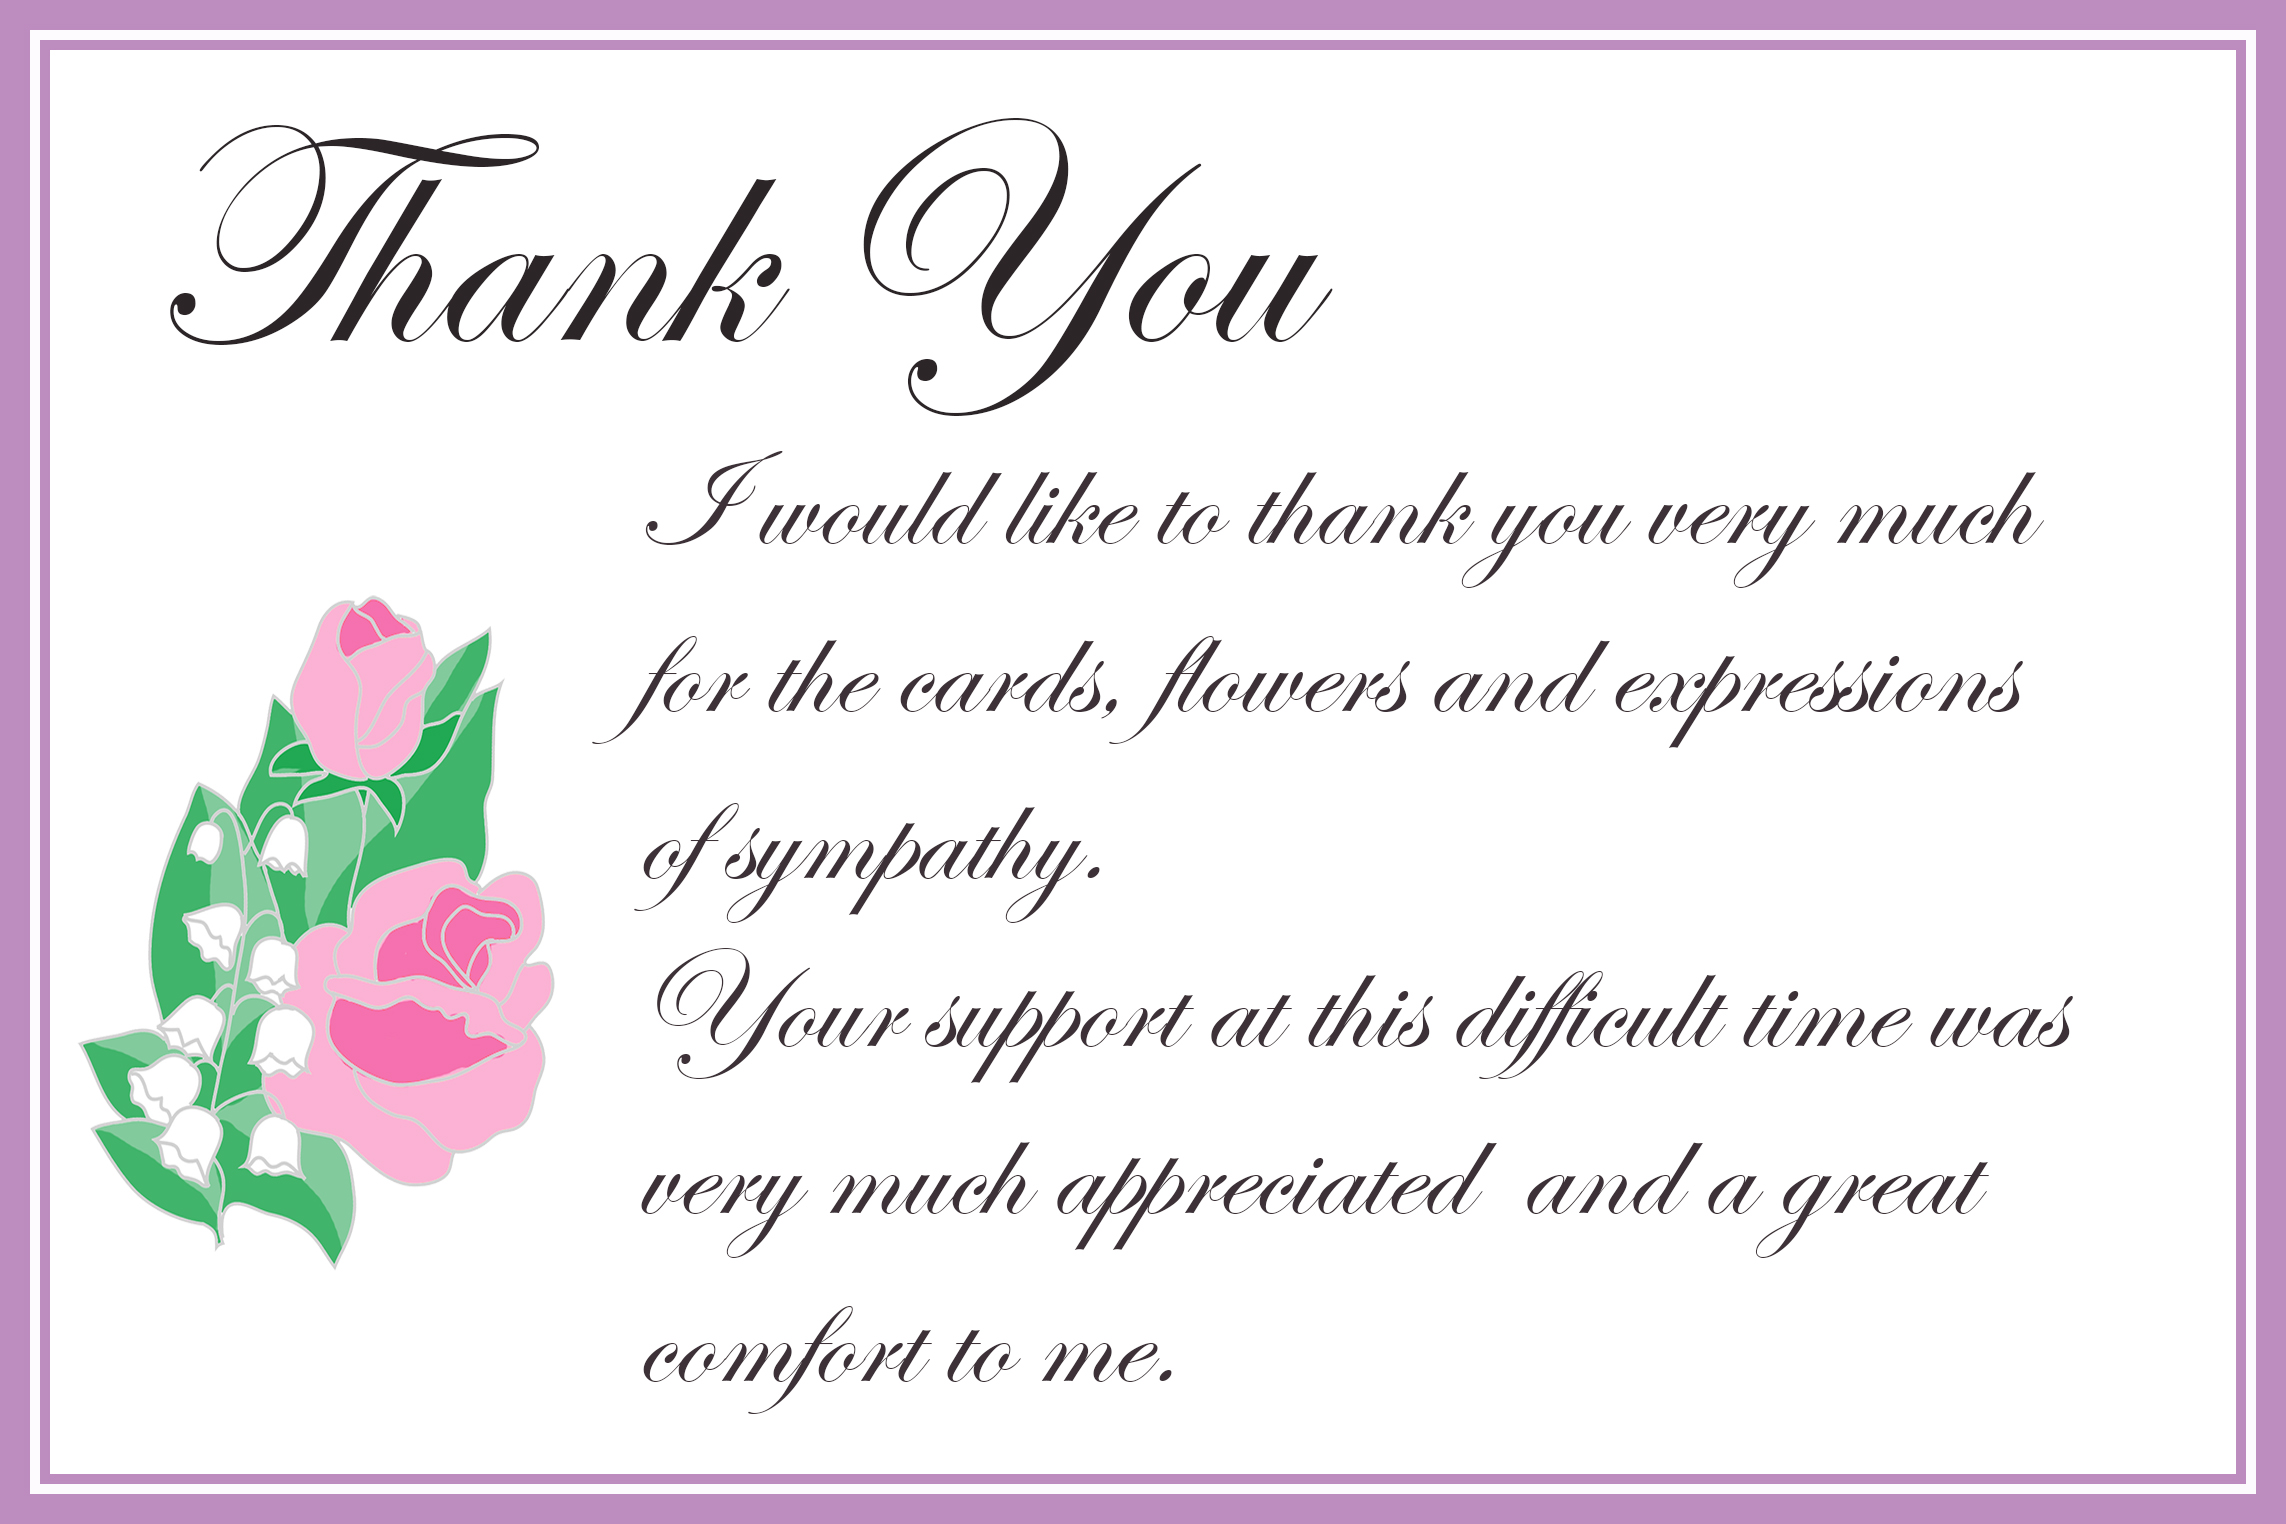 Sympathy Card Thank You web greeting cards